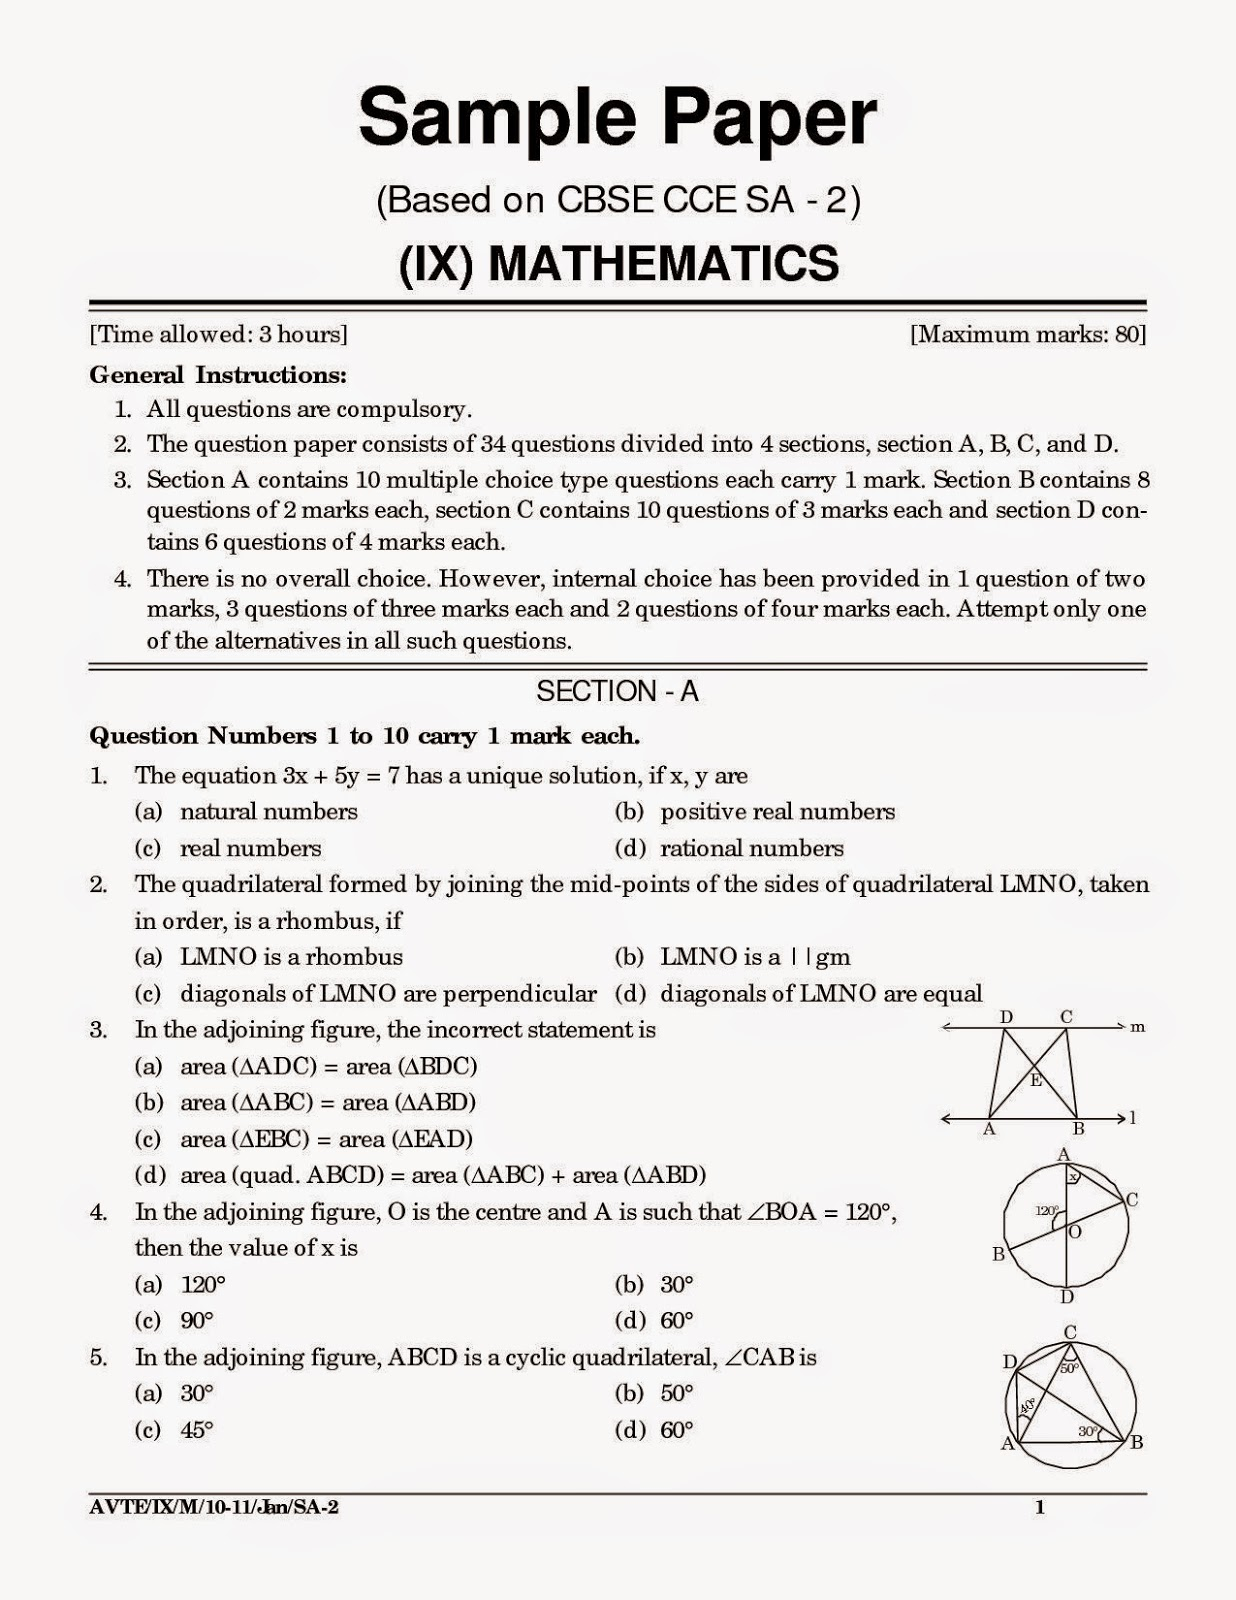 019 Sample Argumentative Essay Cbse20sample20papers20for20class201020mathematics20and20science Jpg Awful Persuasive 6th Grade Pdf Download Full